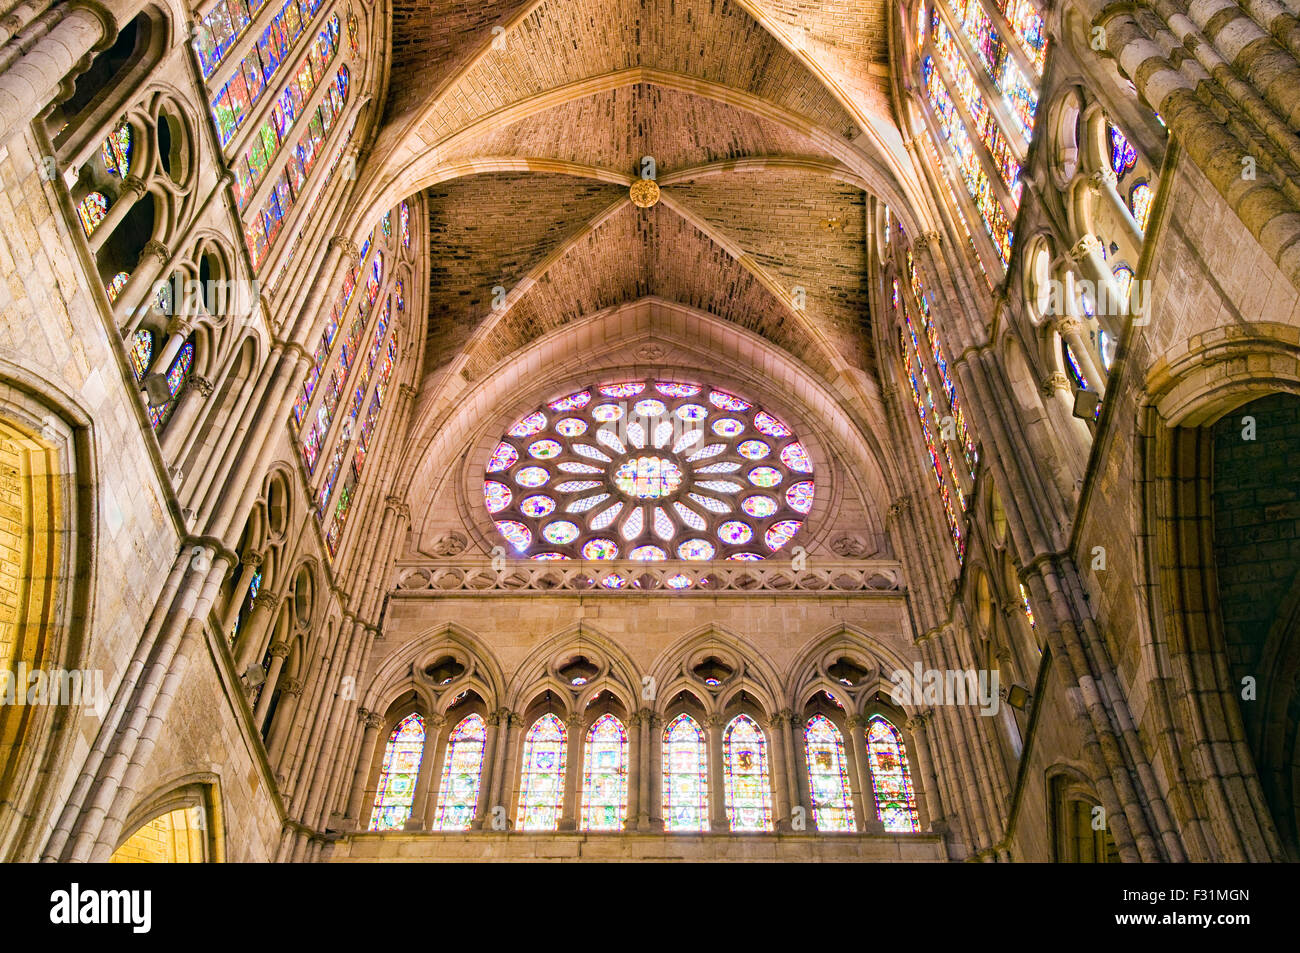 The Famous Interior And Stained Glass Windows Of Leon Cathedral In Spain